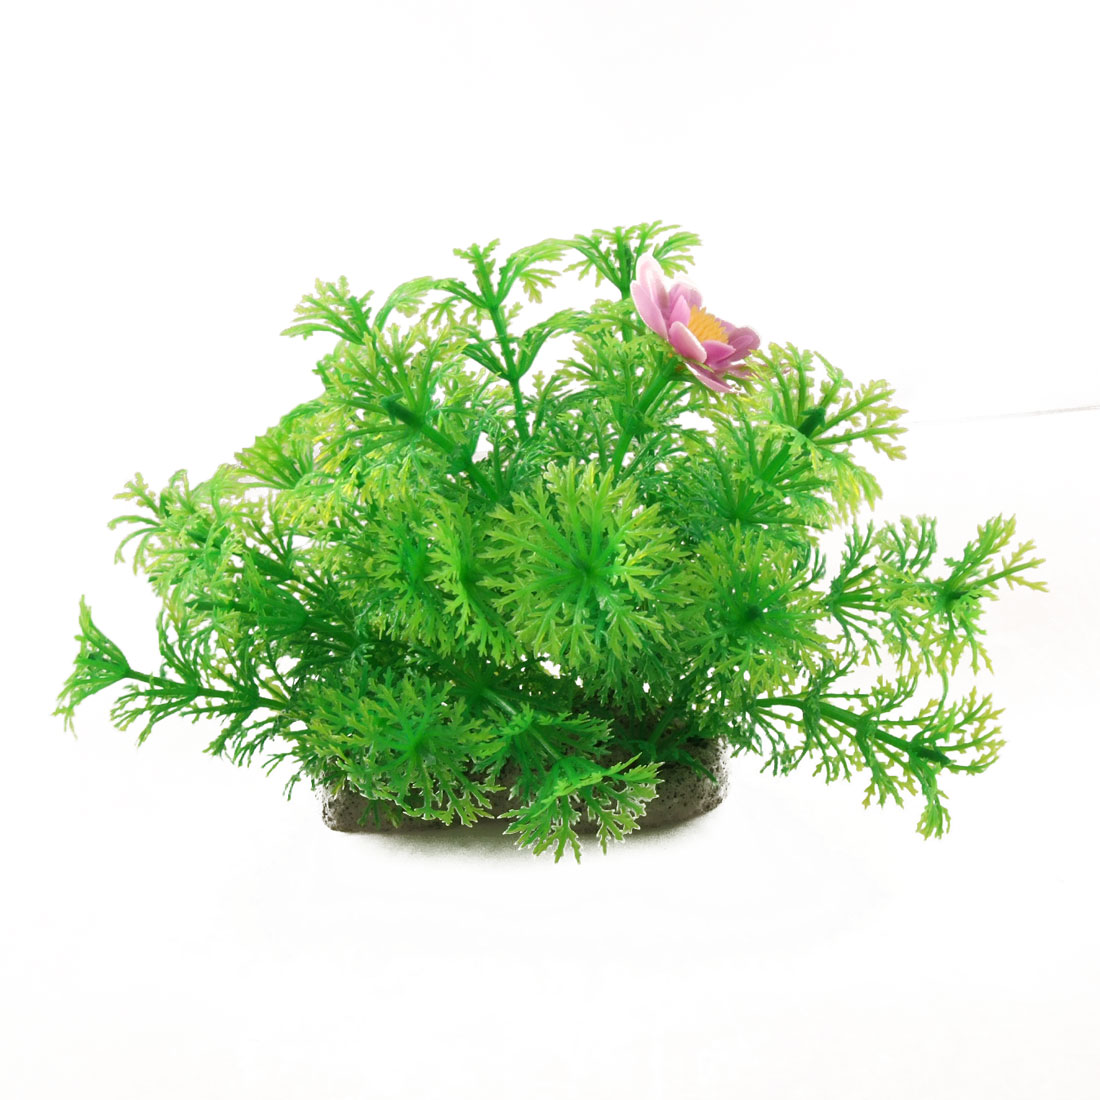 Aquarium Ceramic Base Floral Snowflake Leaves Plastic Plant Decor Green